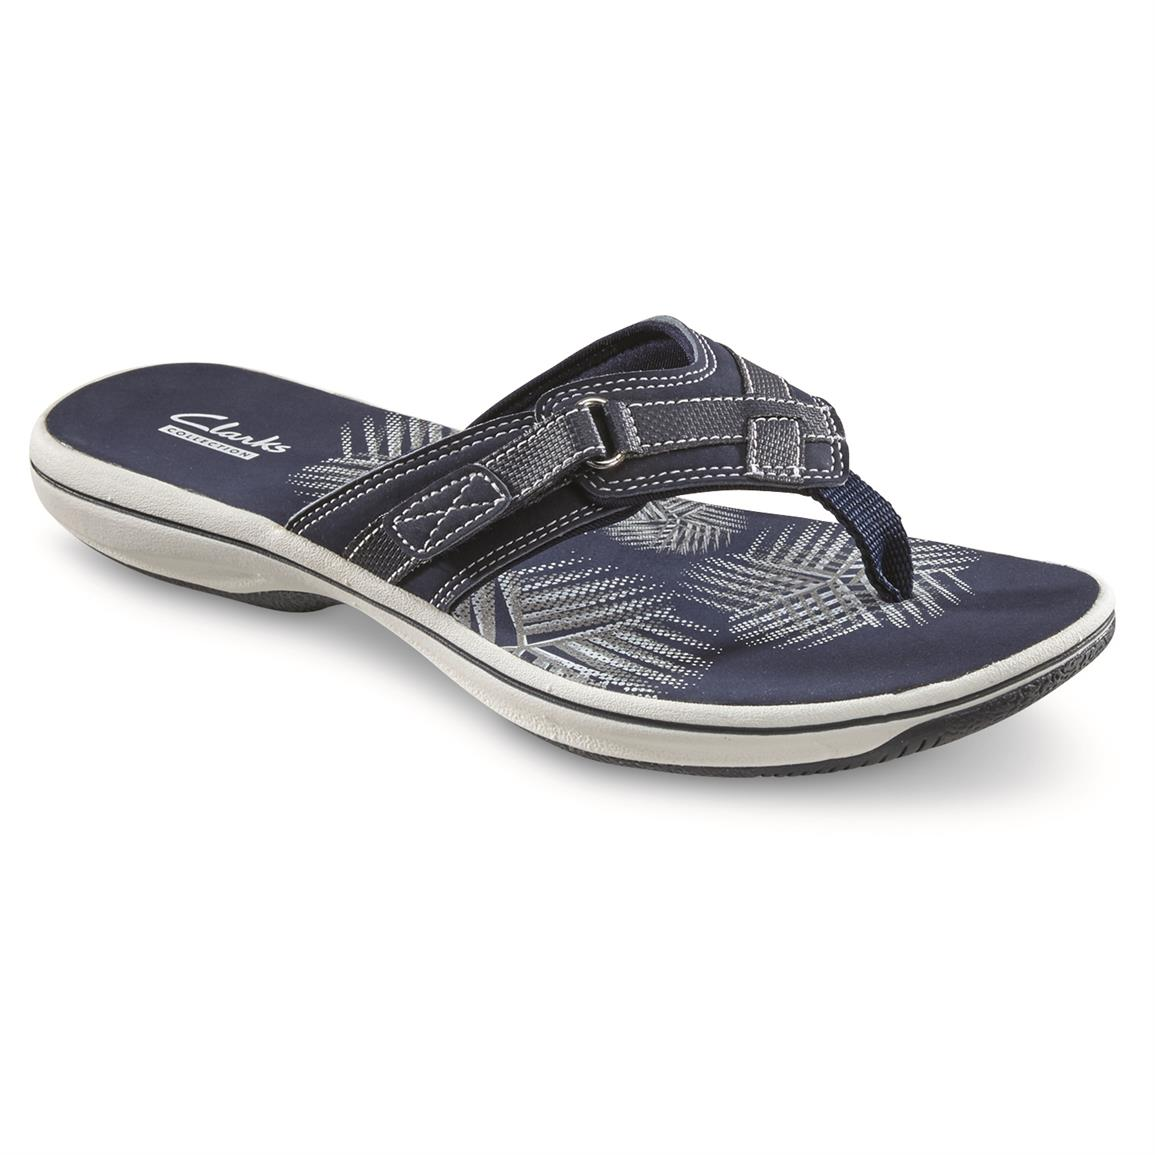 Clarks Women's Breeze Sea Sandals, Navy